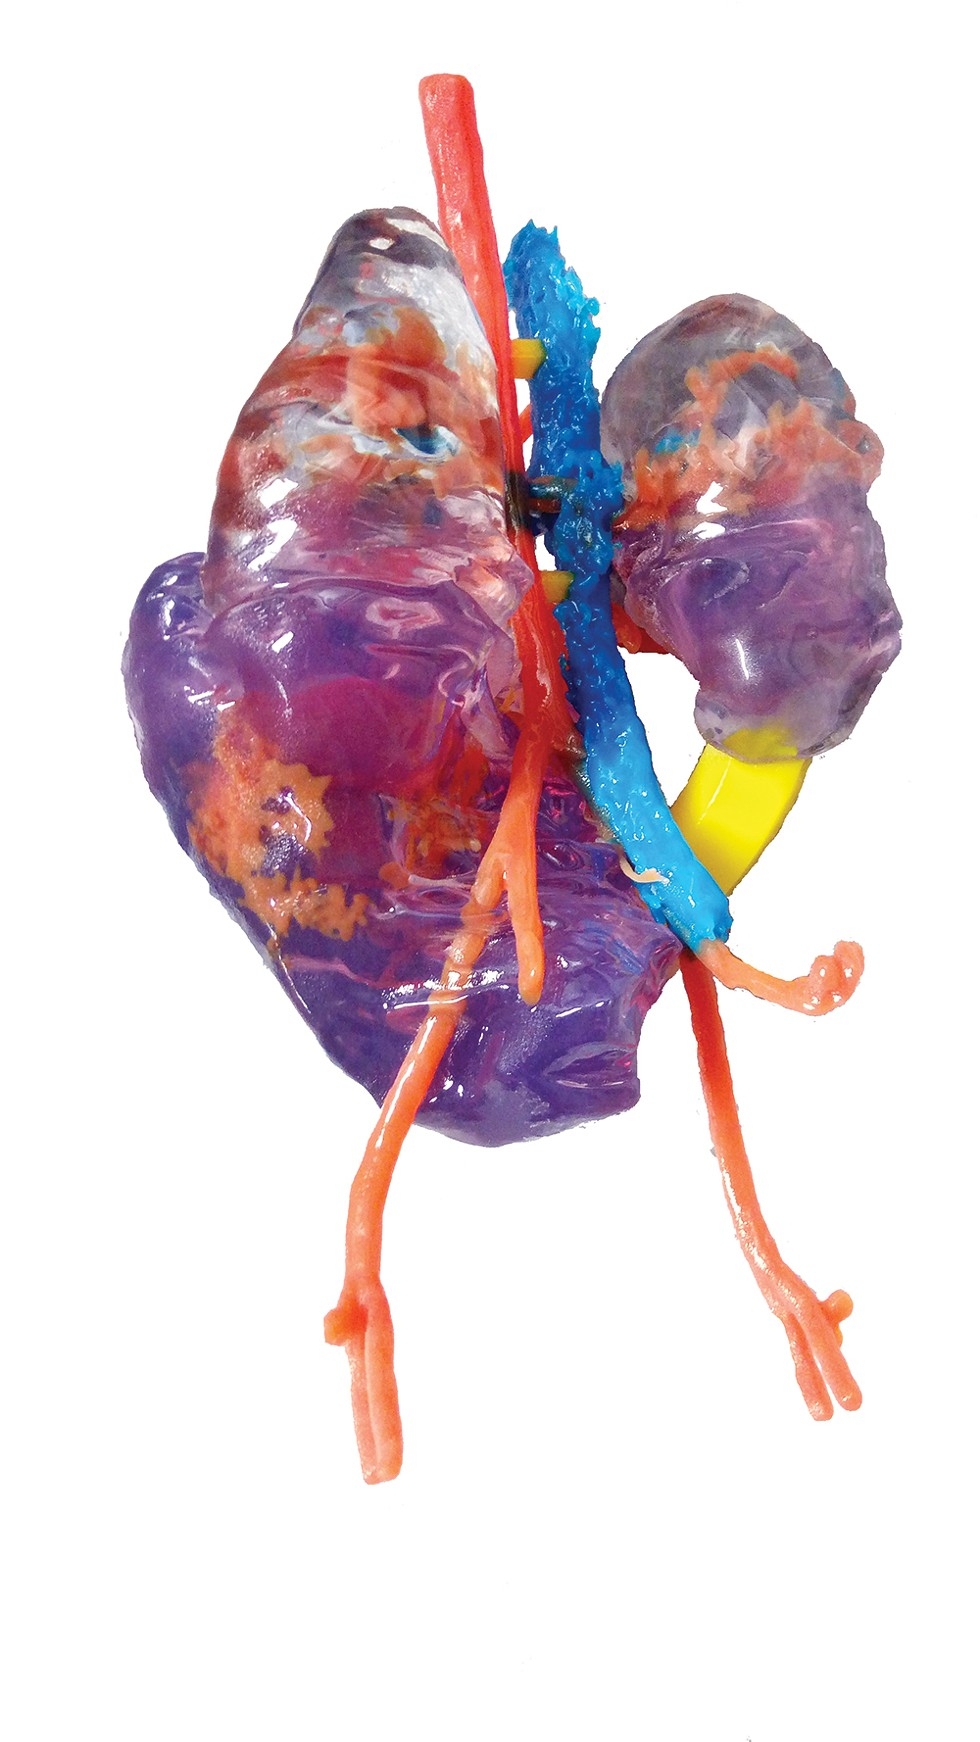 Model of a child's kidney with tumor tissue, 3D-printed by Mediprint to help doctors plan surgery and delineate the boundaries between the cancer (translucent purple) and the organ (clear).